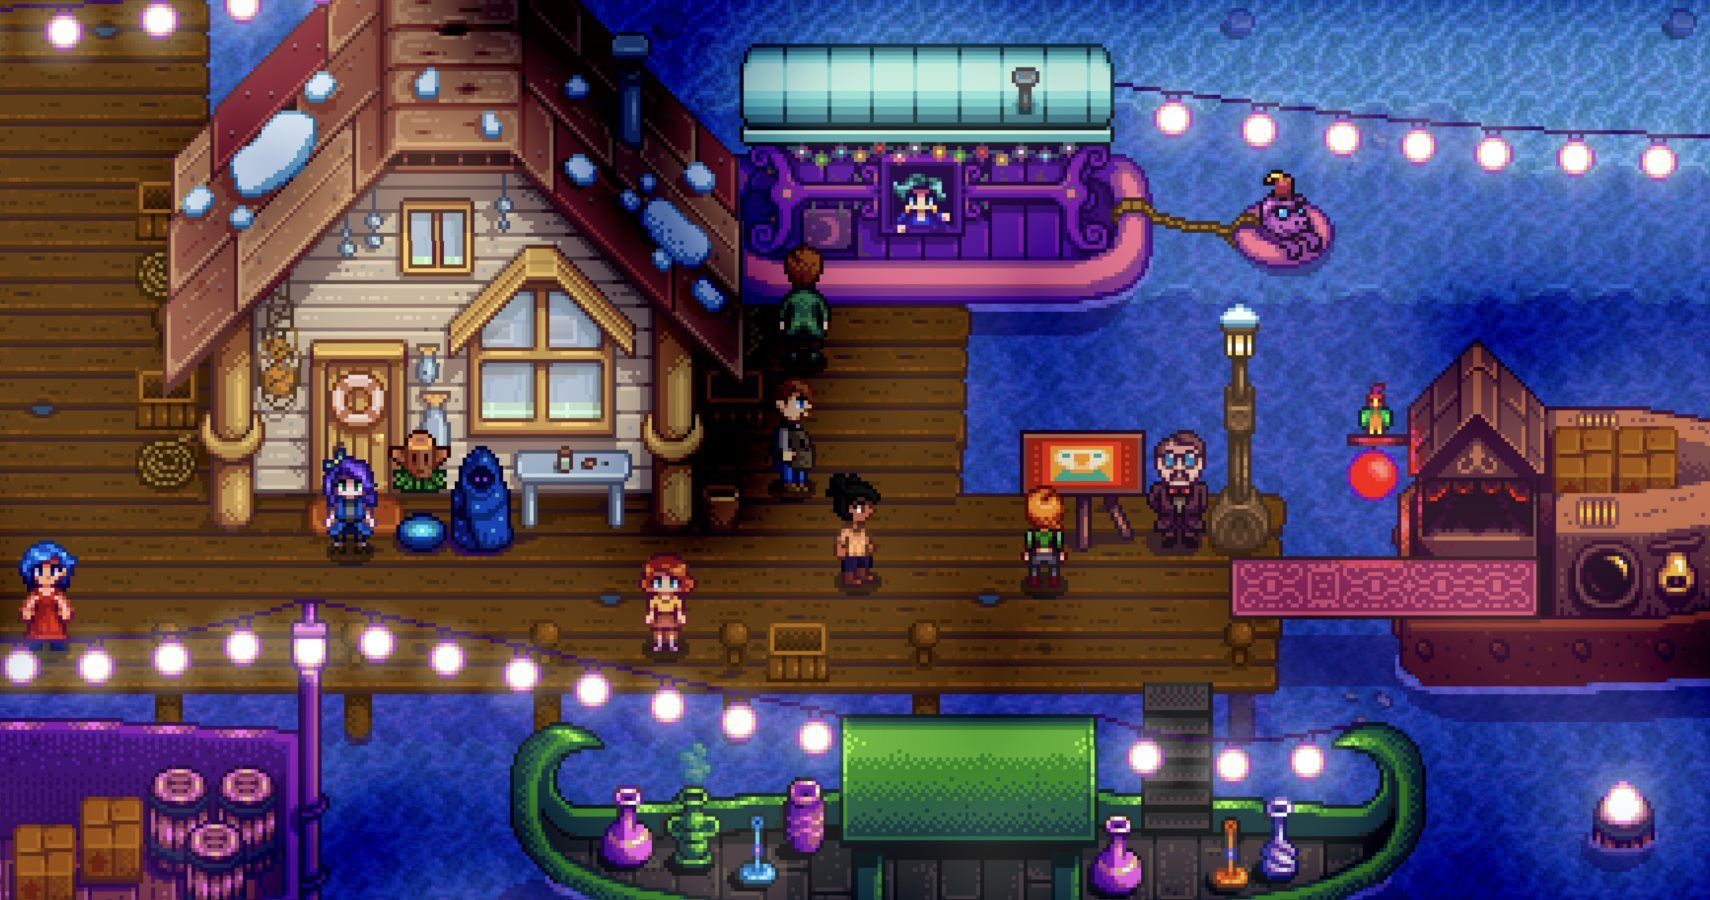 Stardew Valley Multiplayer Coming To Consoles Soon, After